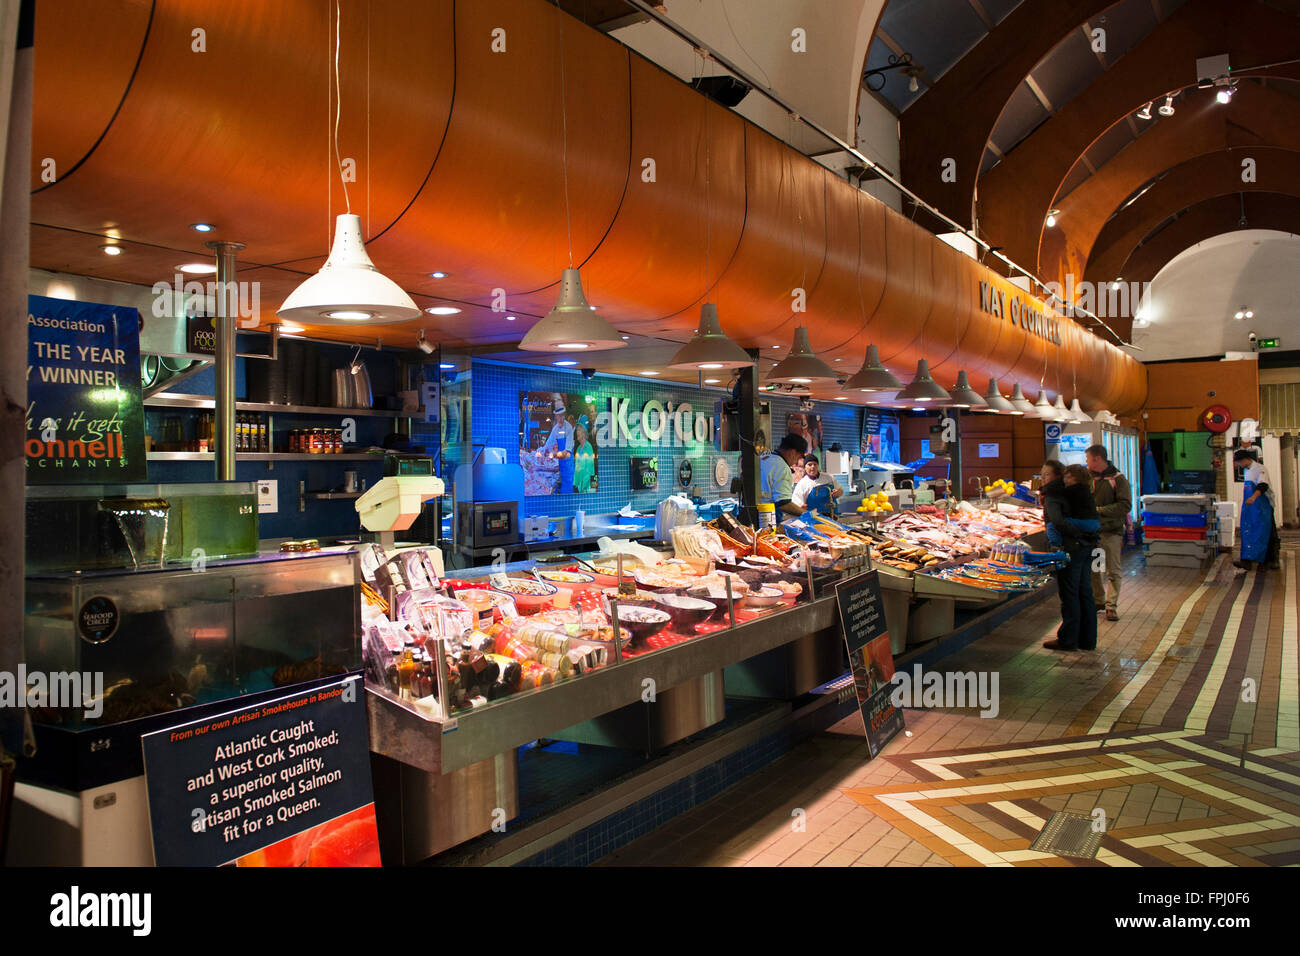 Kay O' Connell's fishmonger and seafood stall at the English market in Cork city, County Cork, Ireland Stock Photo